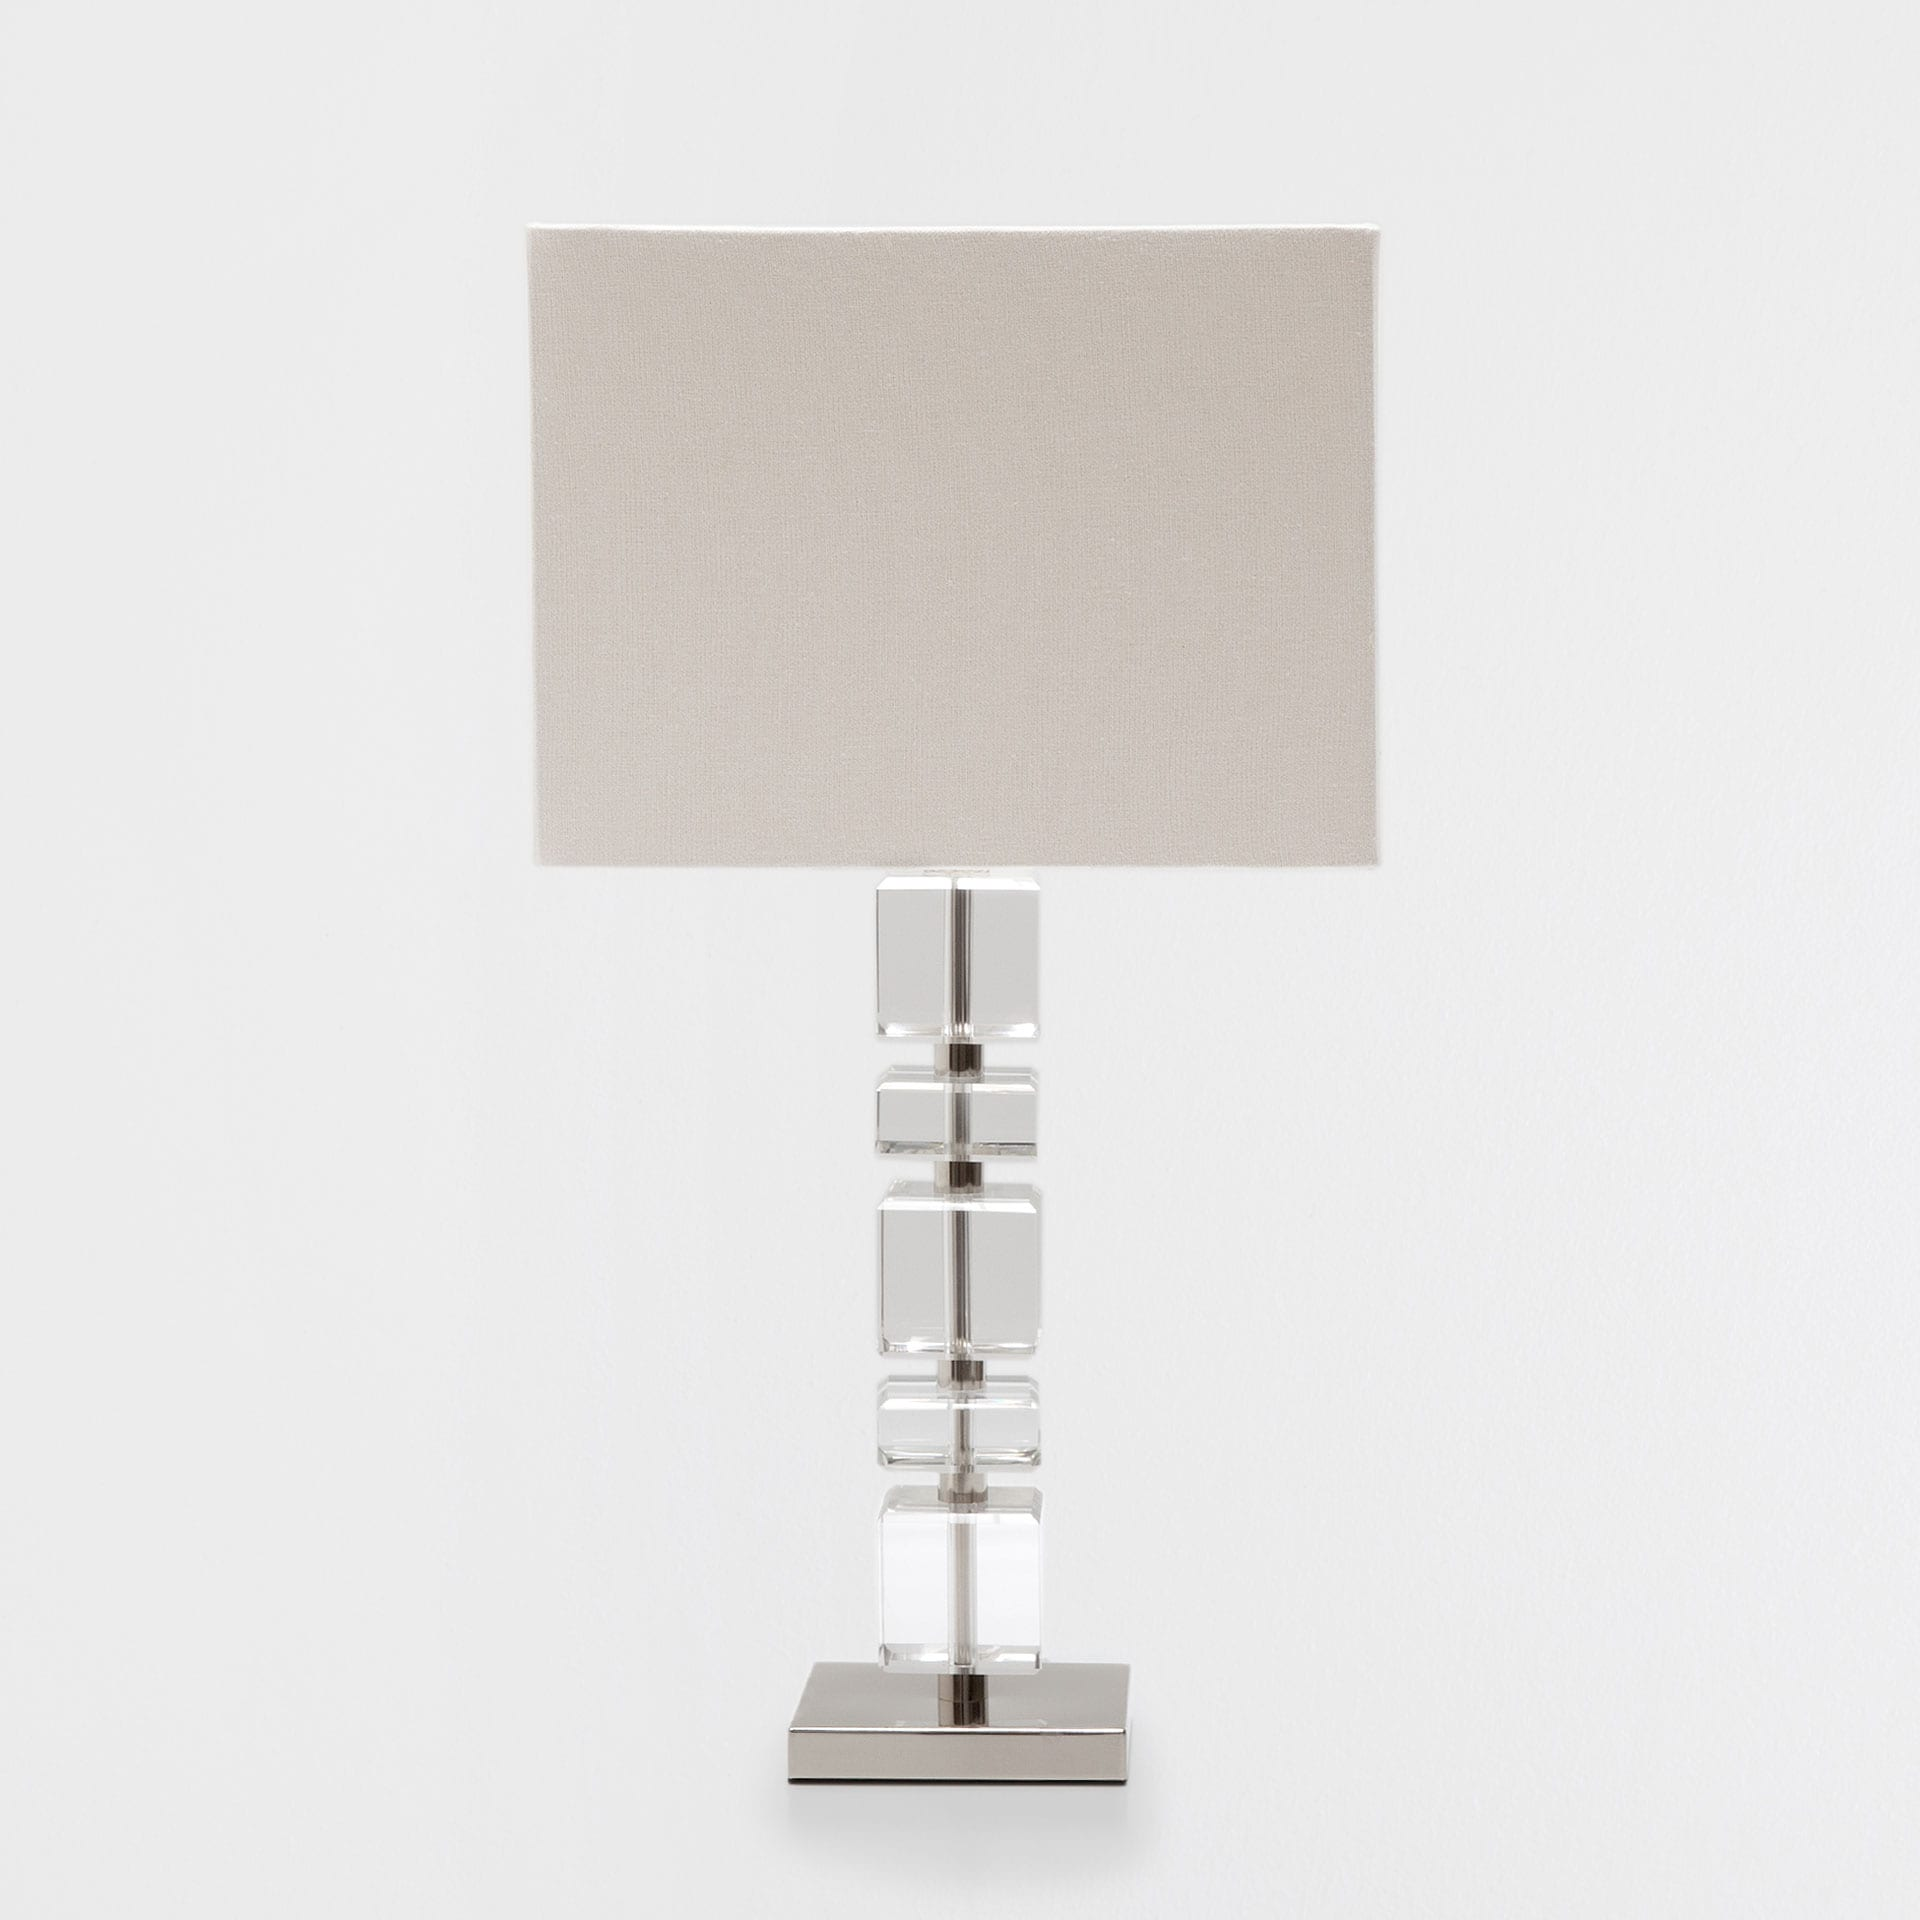 Lamparas de sobremesa zara home simple light prestige - Zara home lamparas ...